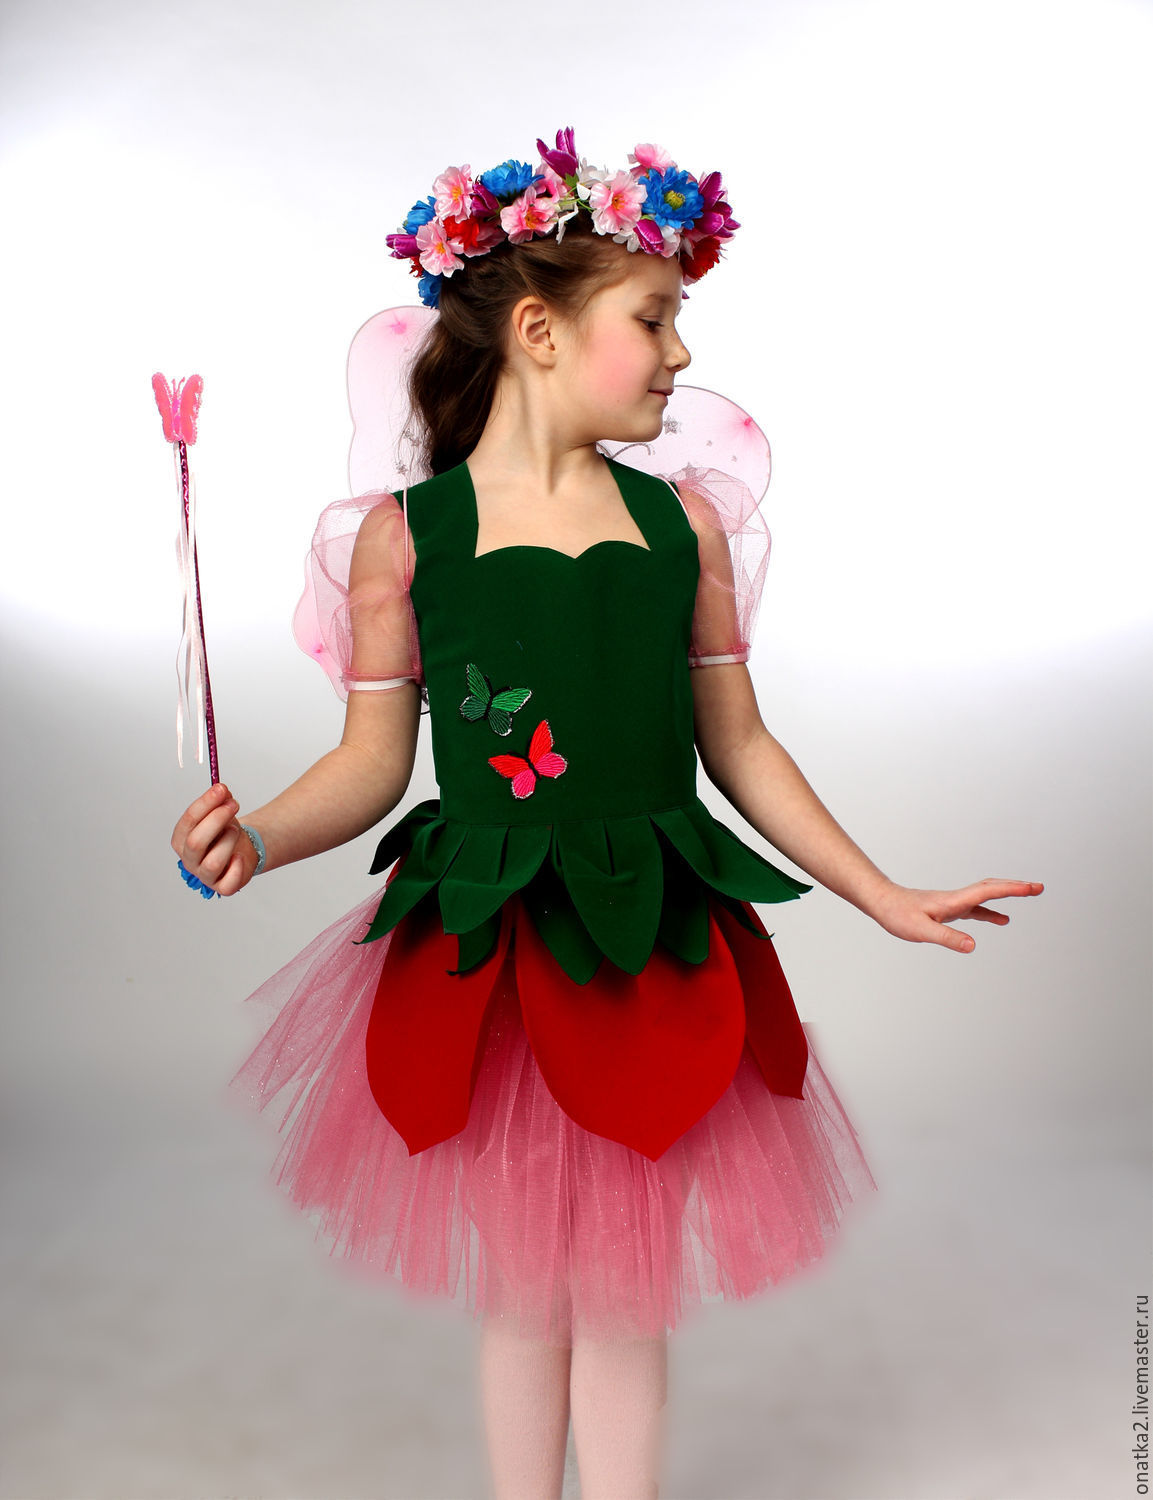 Flower Fairy Carnival Costume Shop Online On Livemaster With